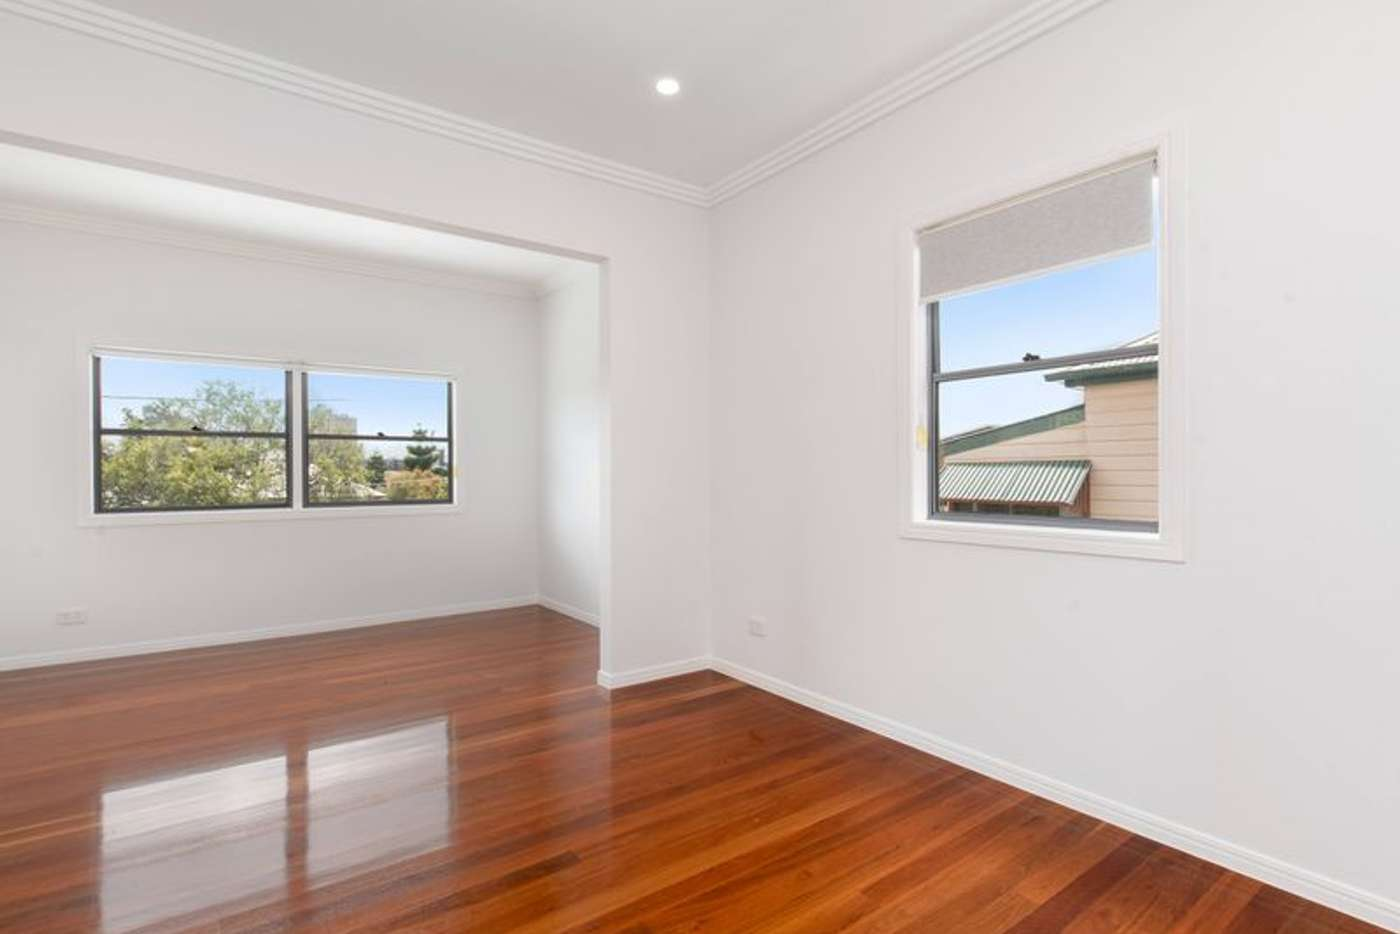 Sixth view of Homely house listing, 1/169 Park Road, Woolloongabba QLD 4102